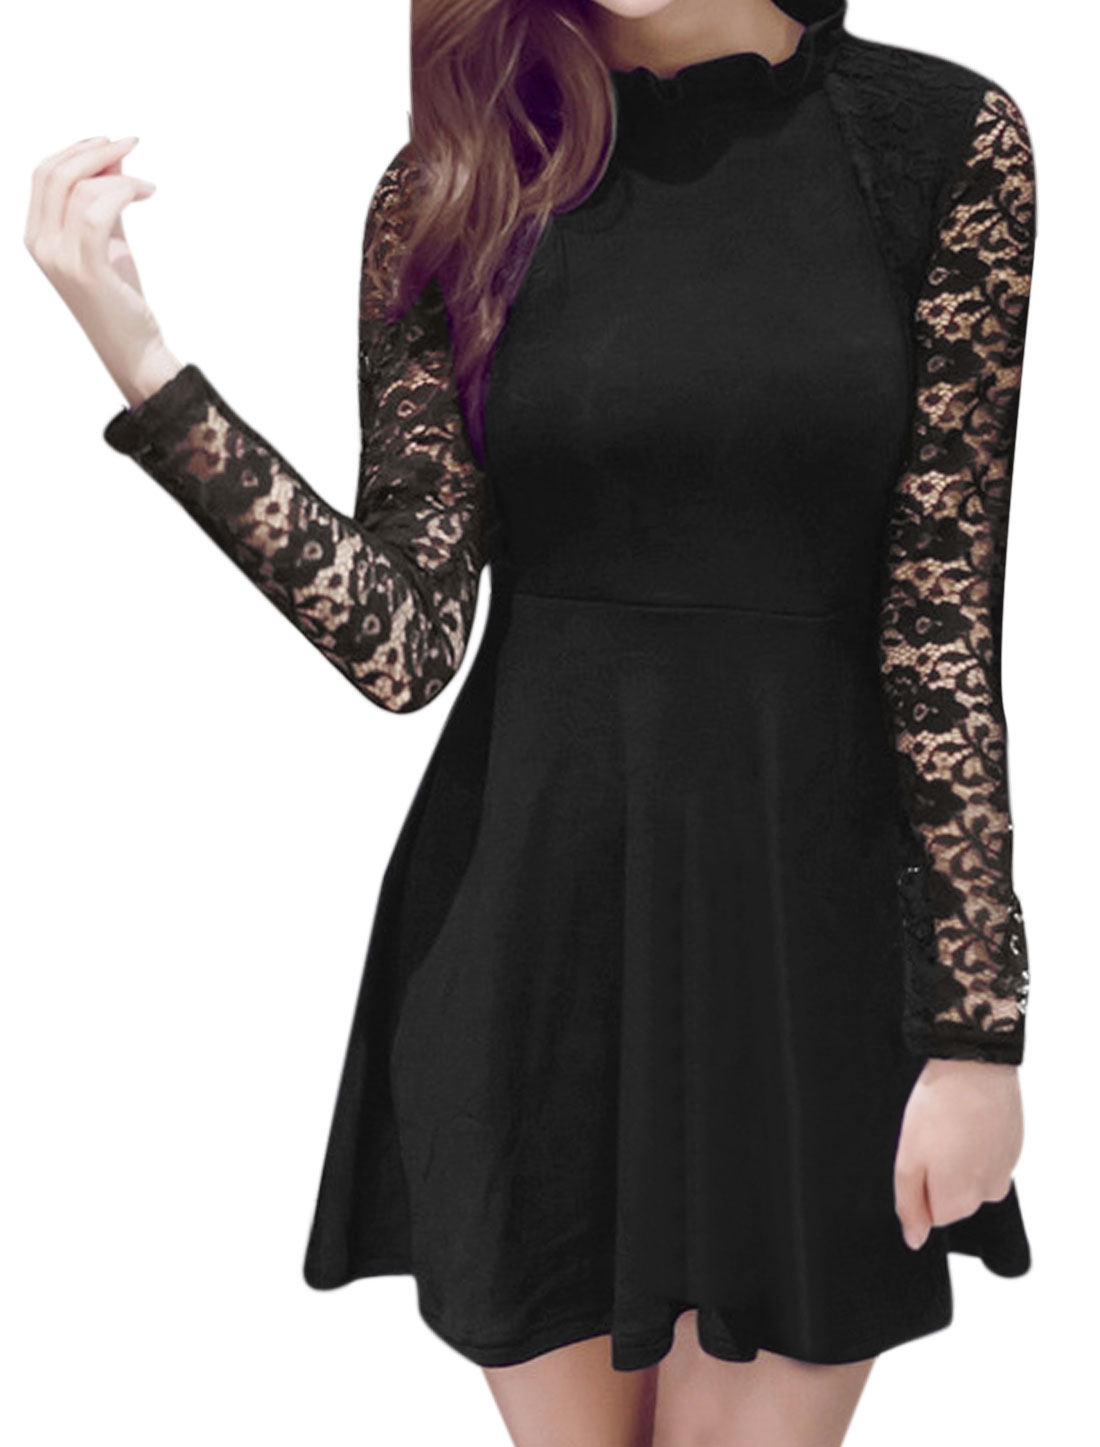 Ladies Ruffled Collar Fit and Flare Lace Dress Black S